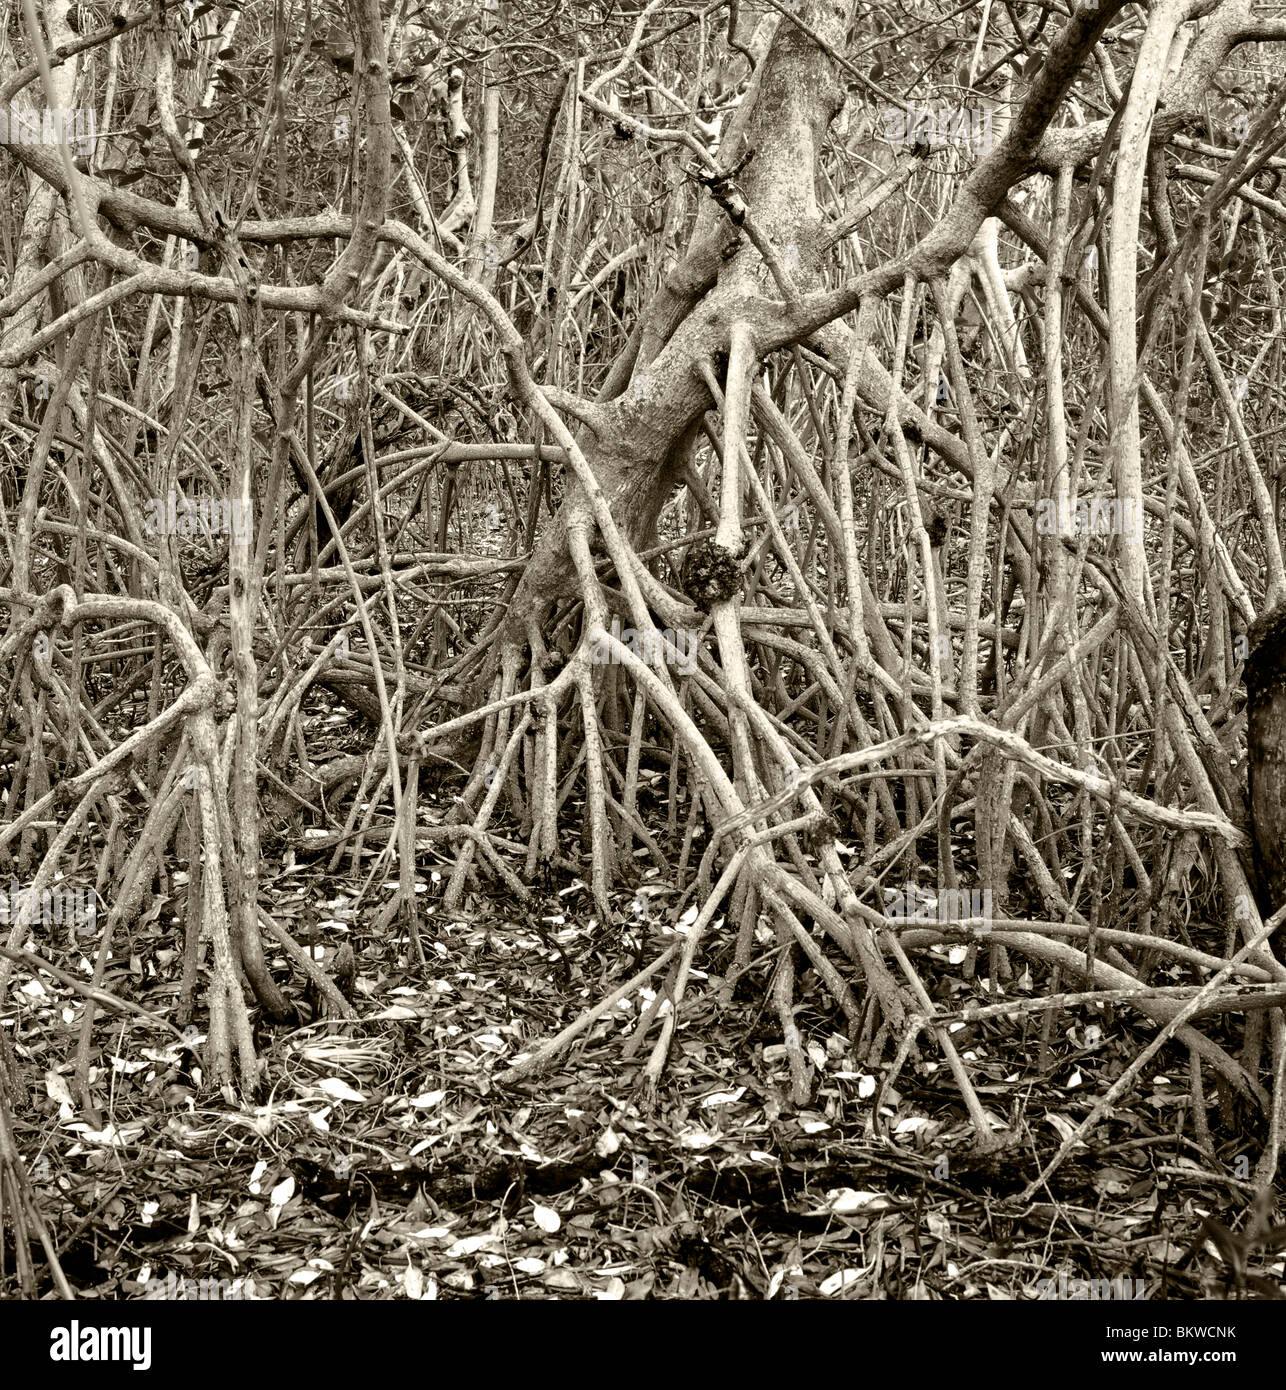 Black & white photograph of the roots of a Mangrove tree, Ding Darling National Wildlife Refuge, Sannibel Island, - Stock Image